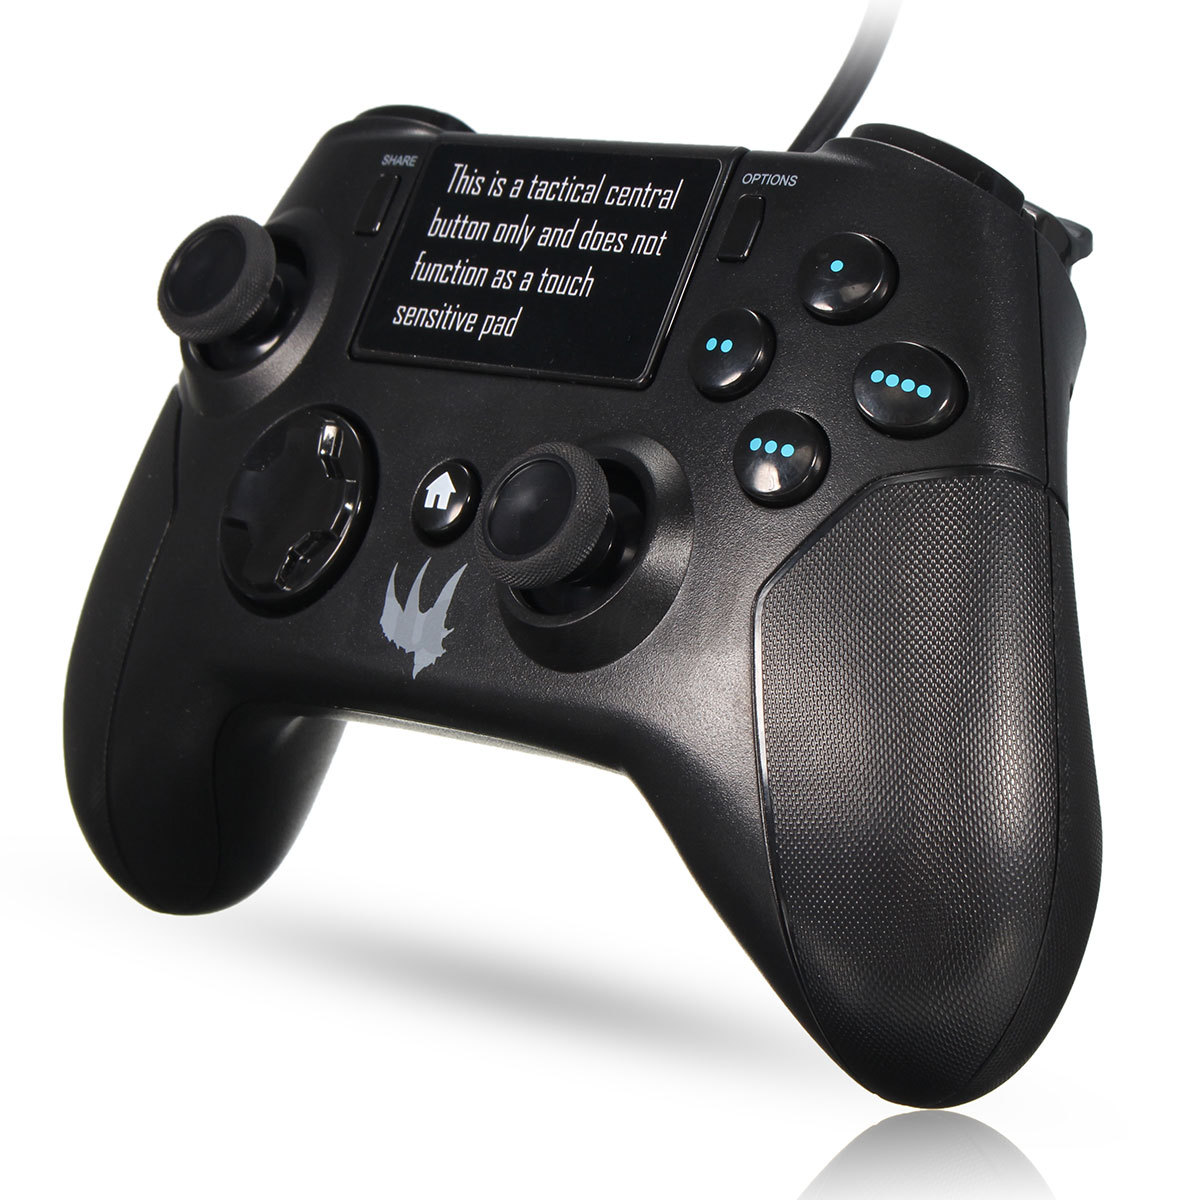 Game Controllers For Ps4 : Gator claw wired game controller dualshock for ps